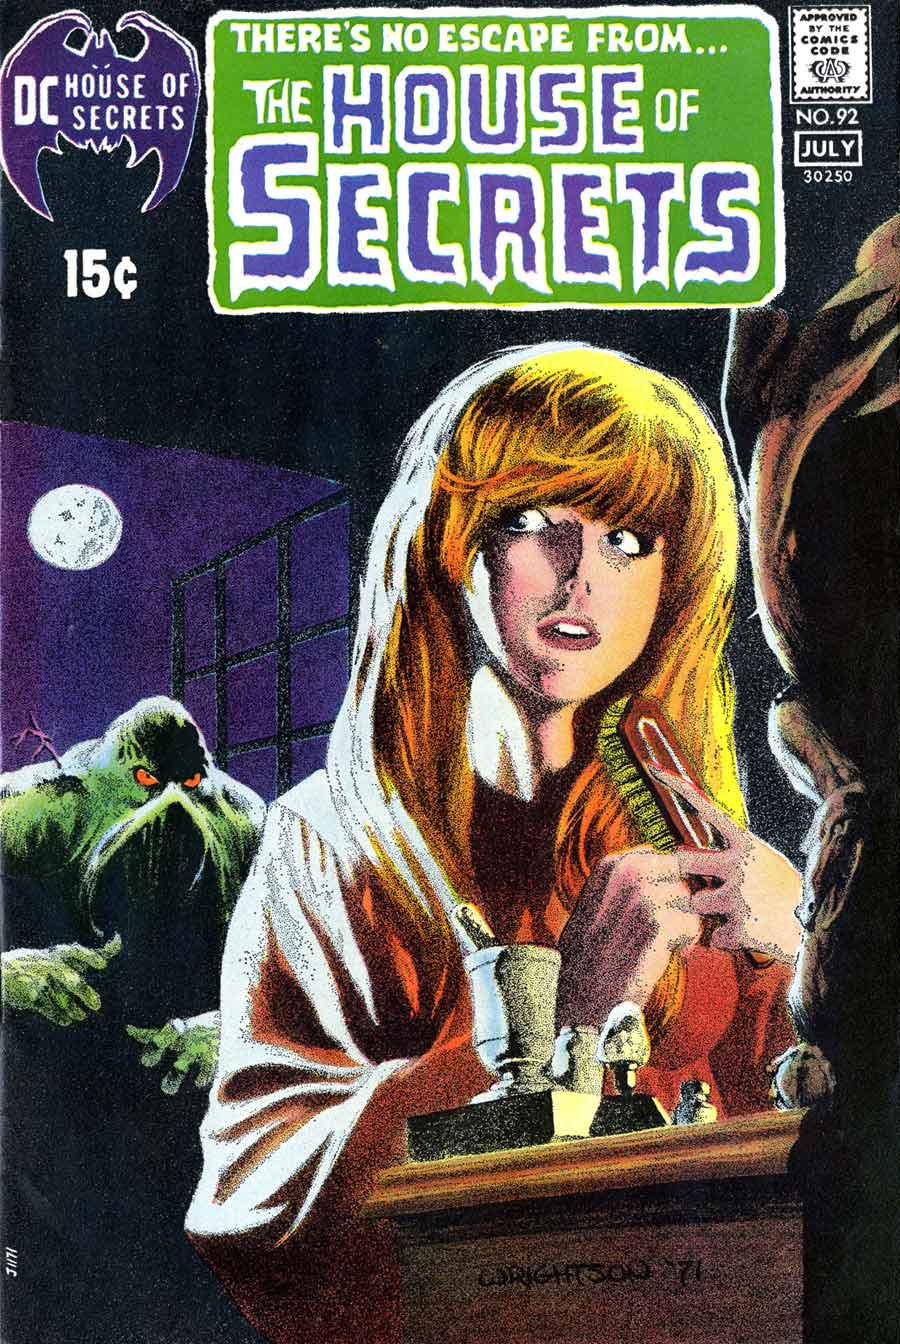 House of Secrets v1 #92 dc comic book cover art by Bernie Wrightson